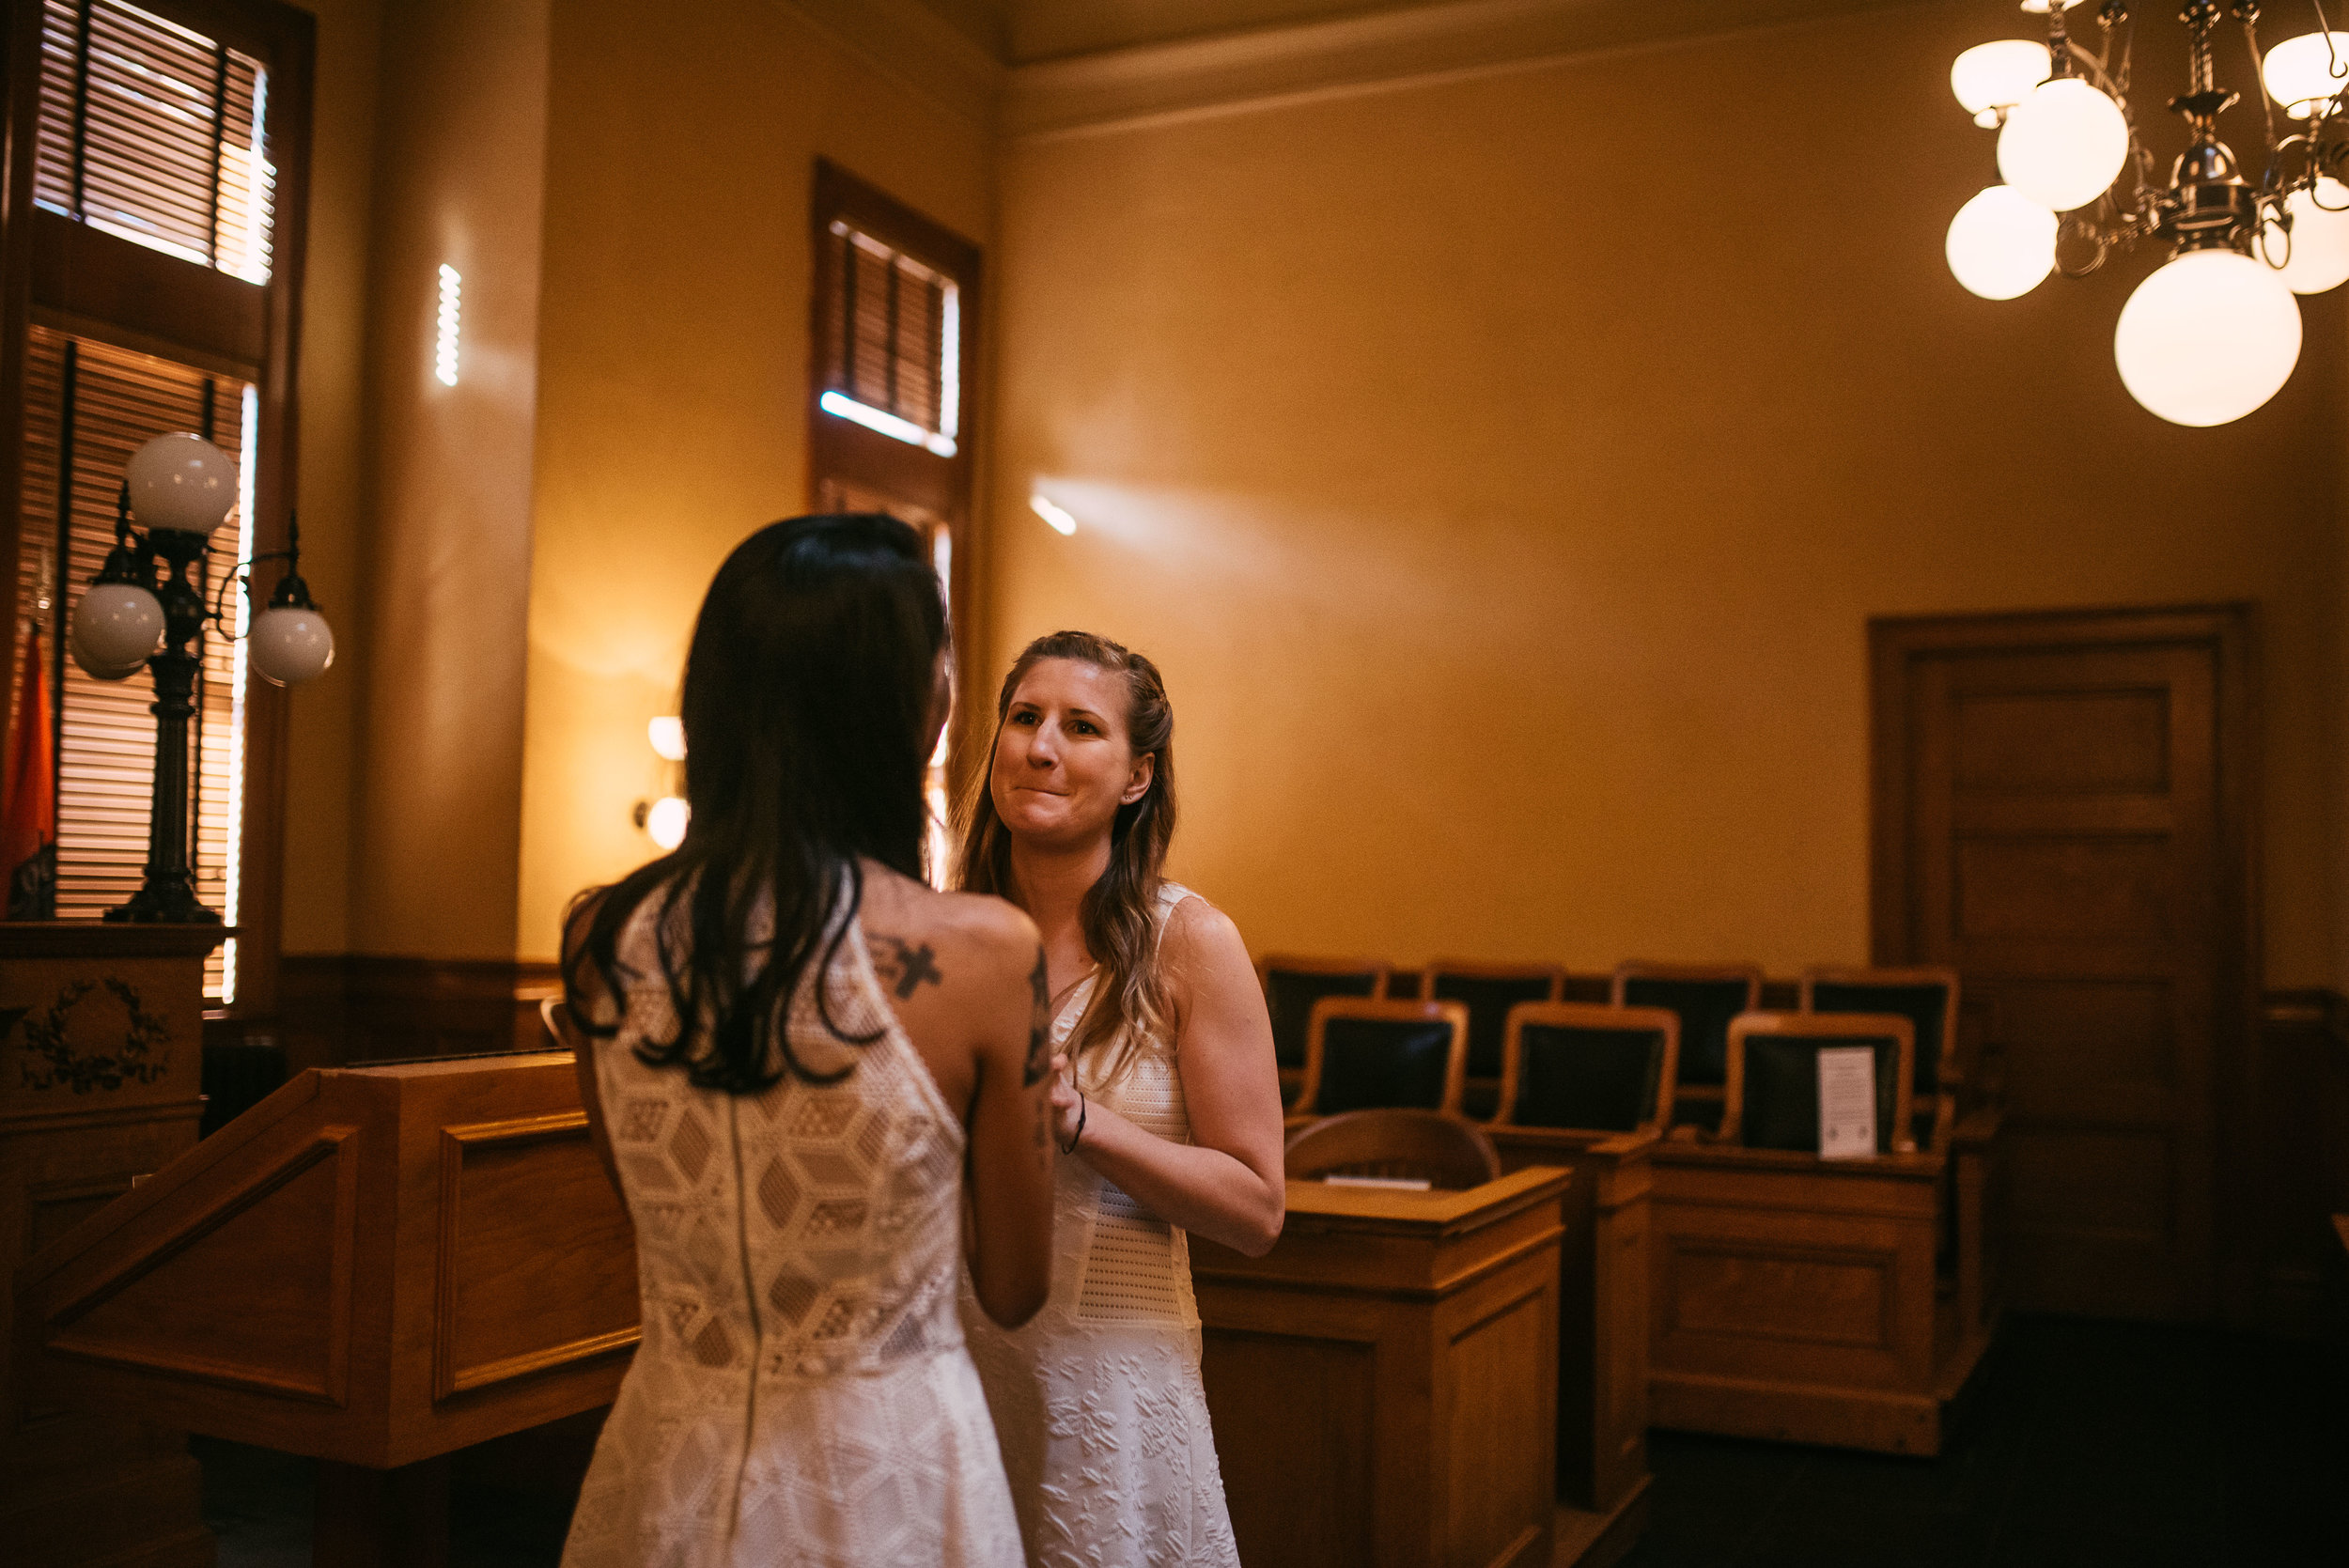 debbie-kelly-santa-ana-old-orange-county-courthouse-elopement-wedding-1-6.jpg